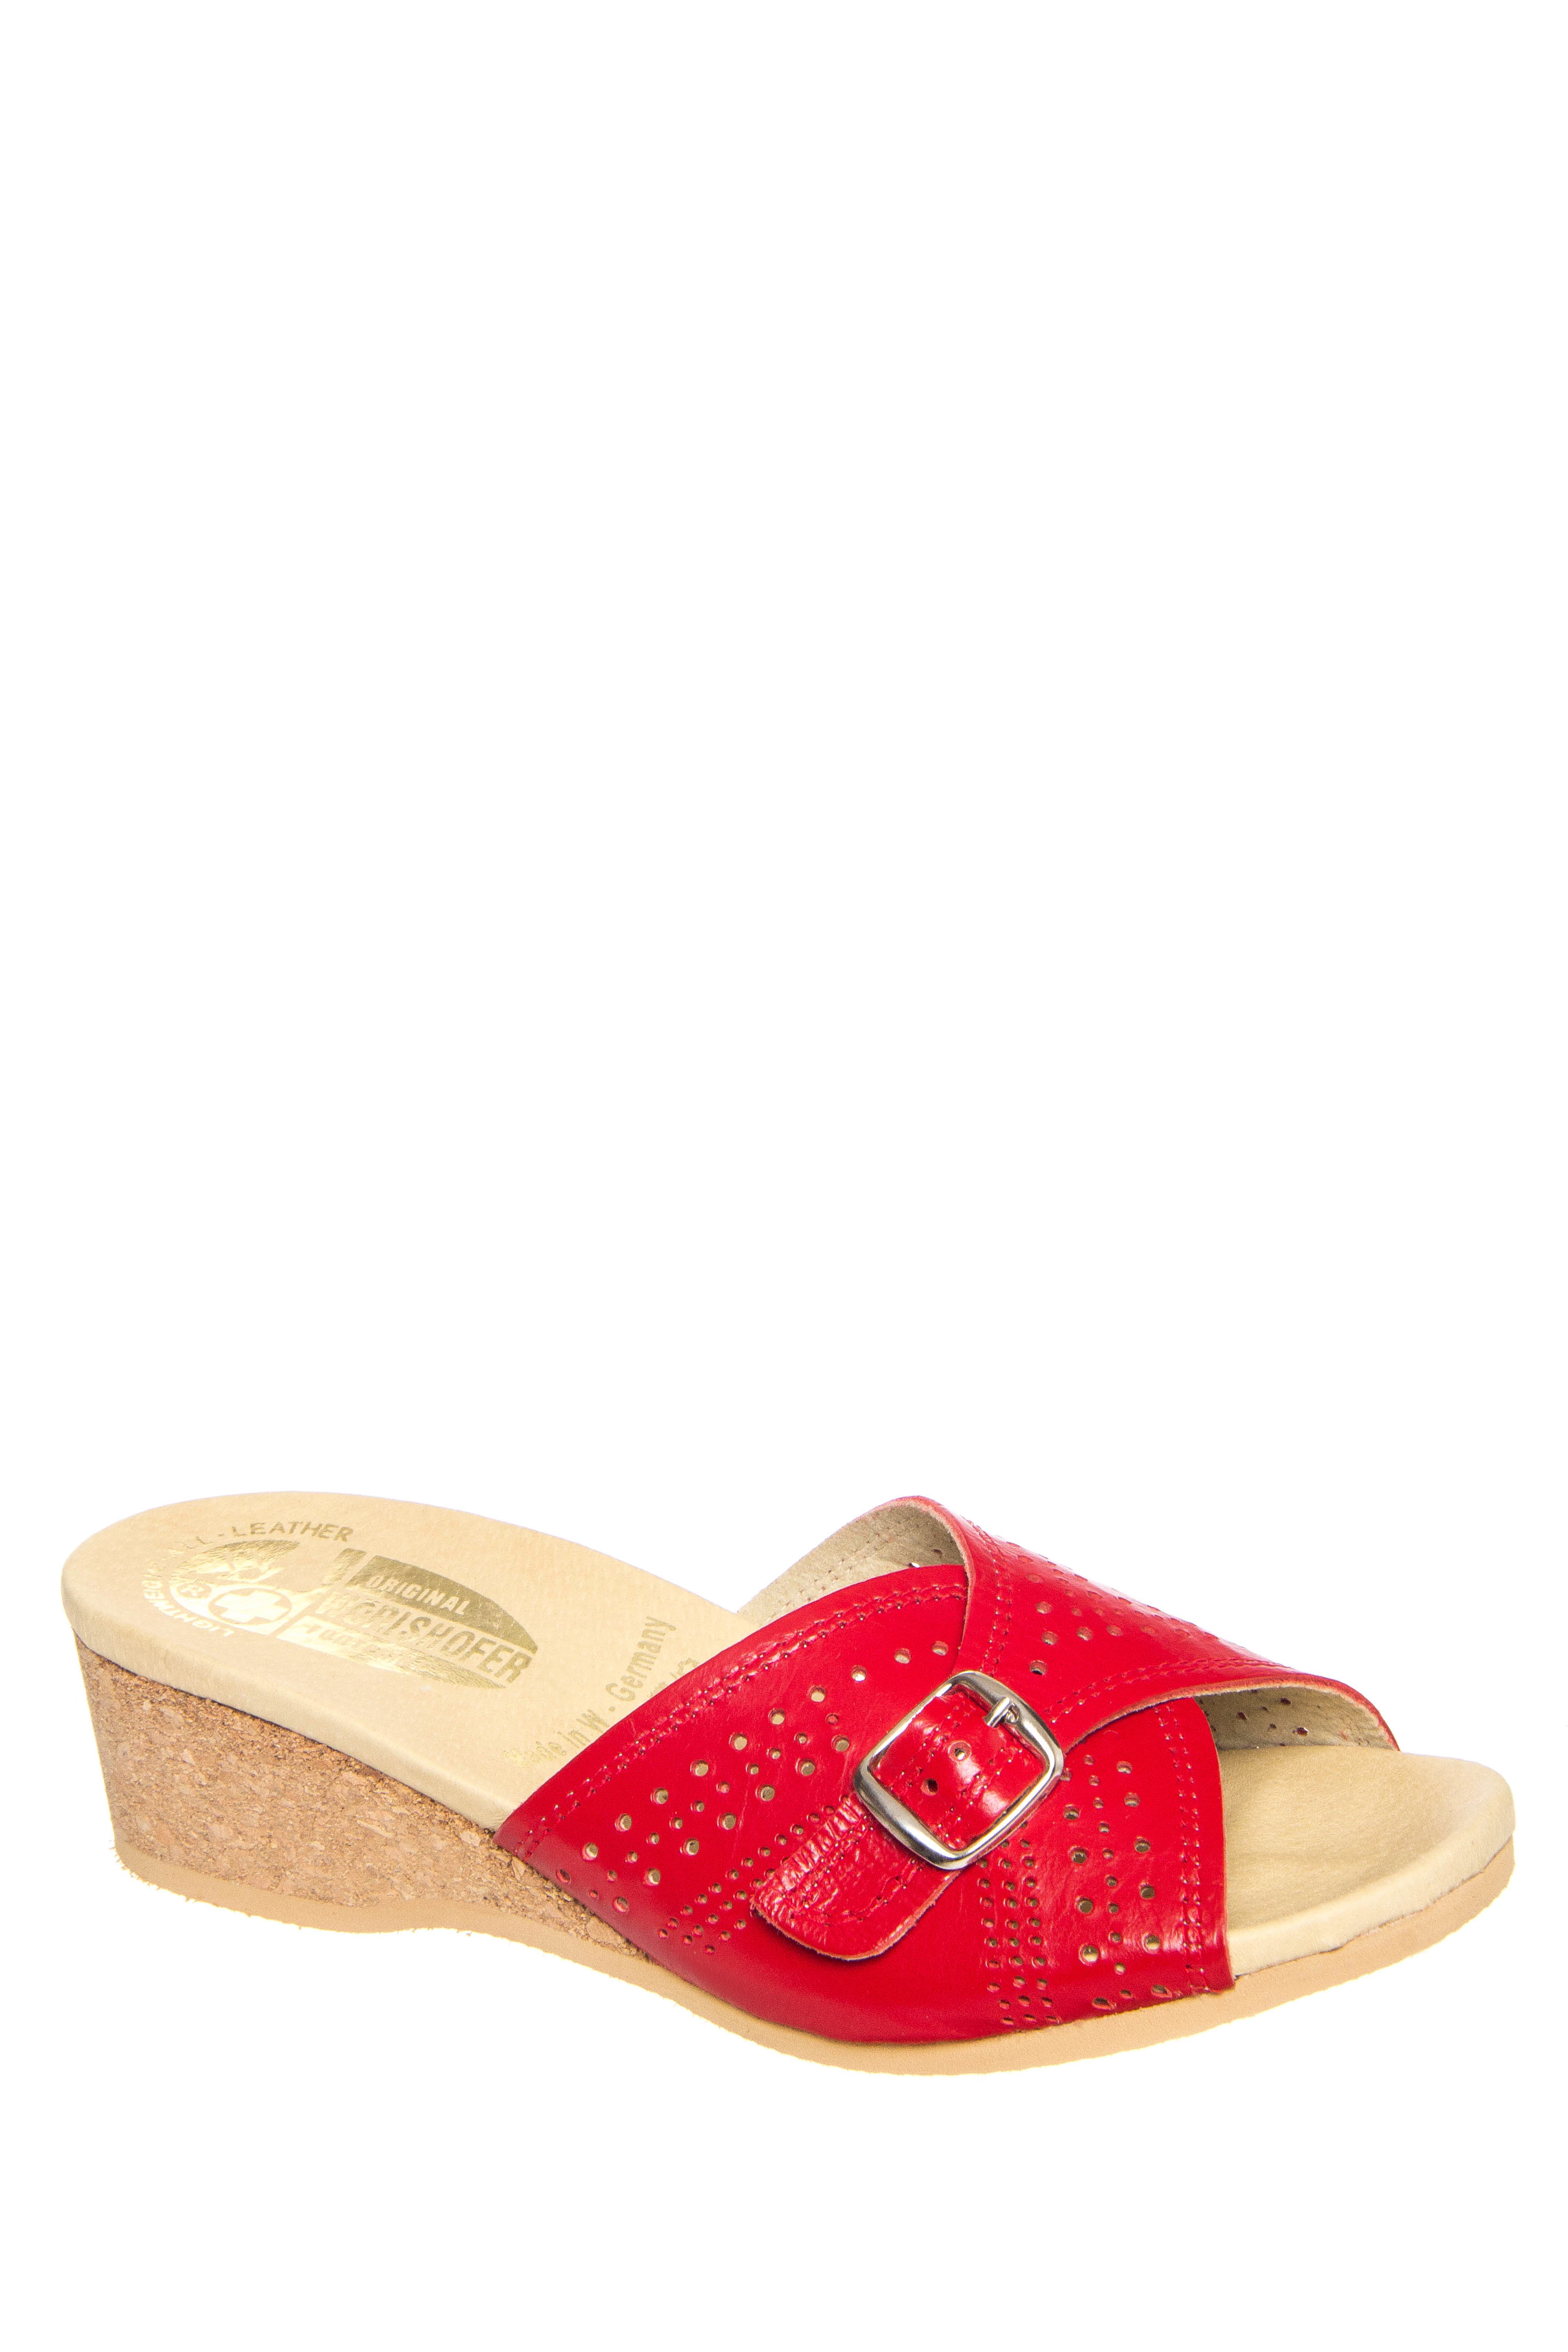 Worishofer 251 Low Wedge Sandals - Red